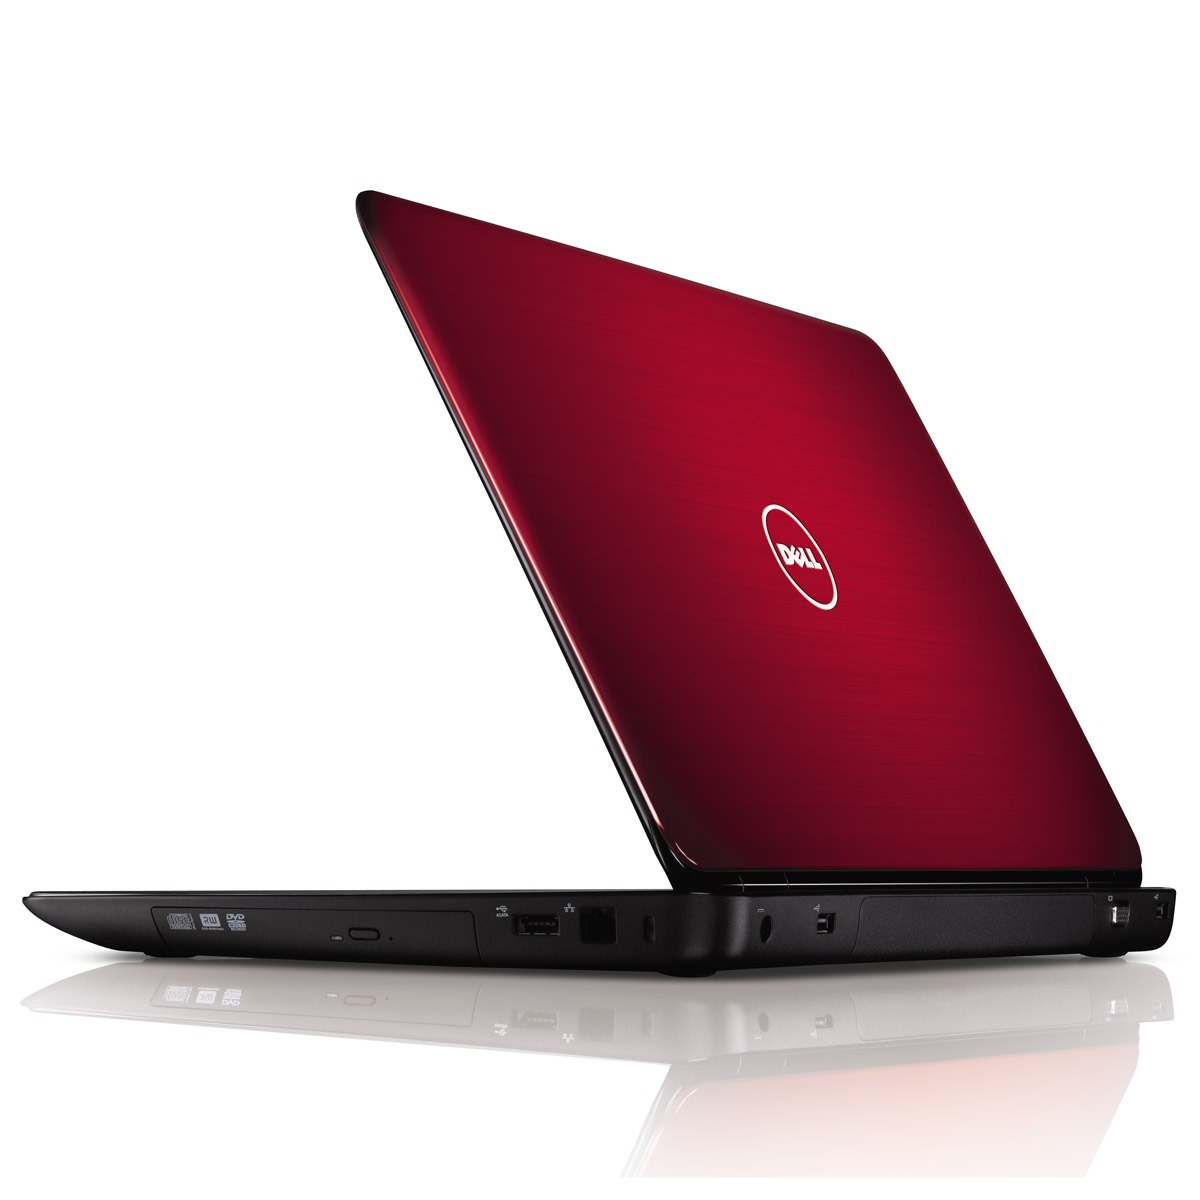 dell inspiron 17r rouge pc portable dell sur ldlc. Black Bedroom Furniture Sets. Home Design Ideas